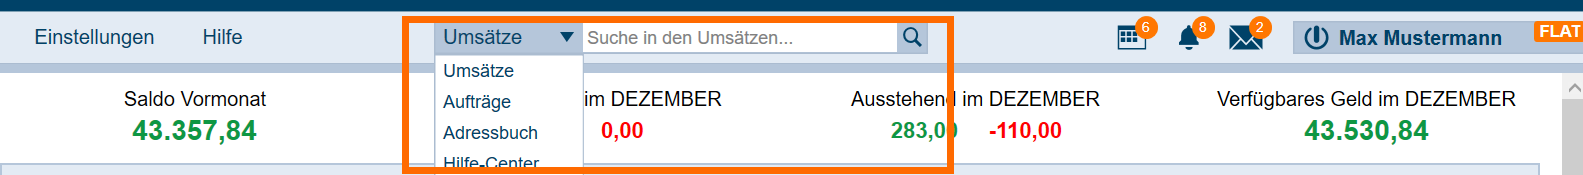 Globale_Suche.png